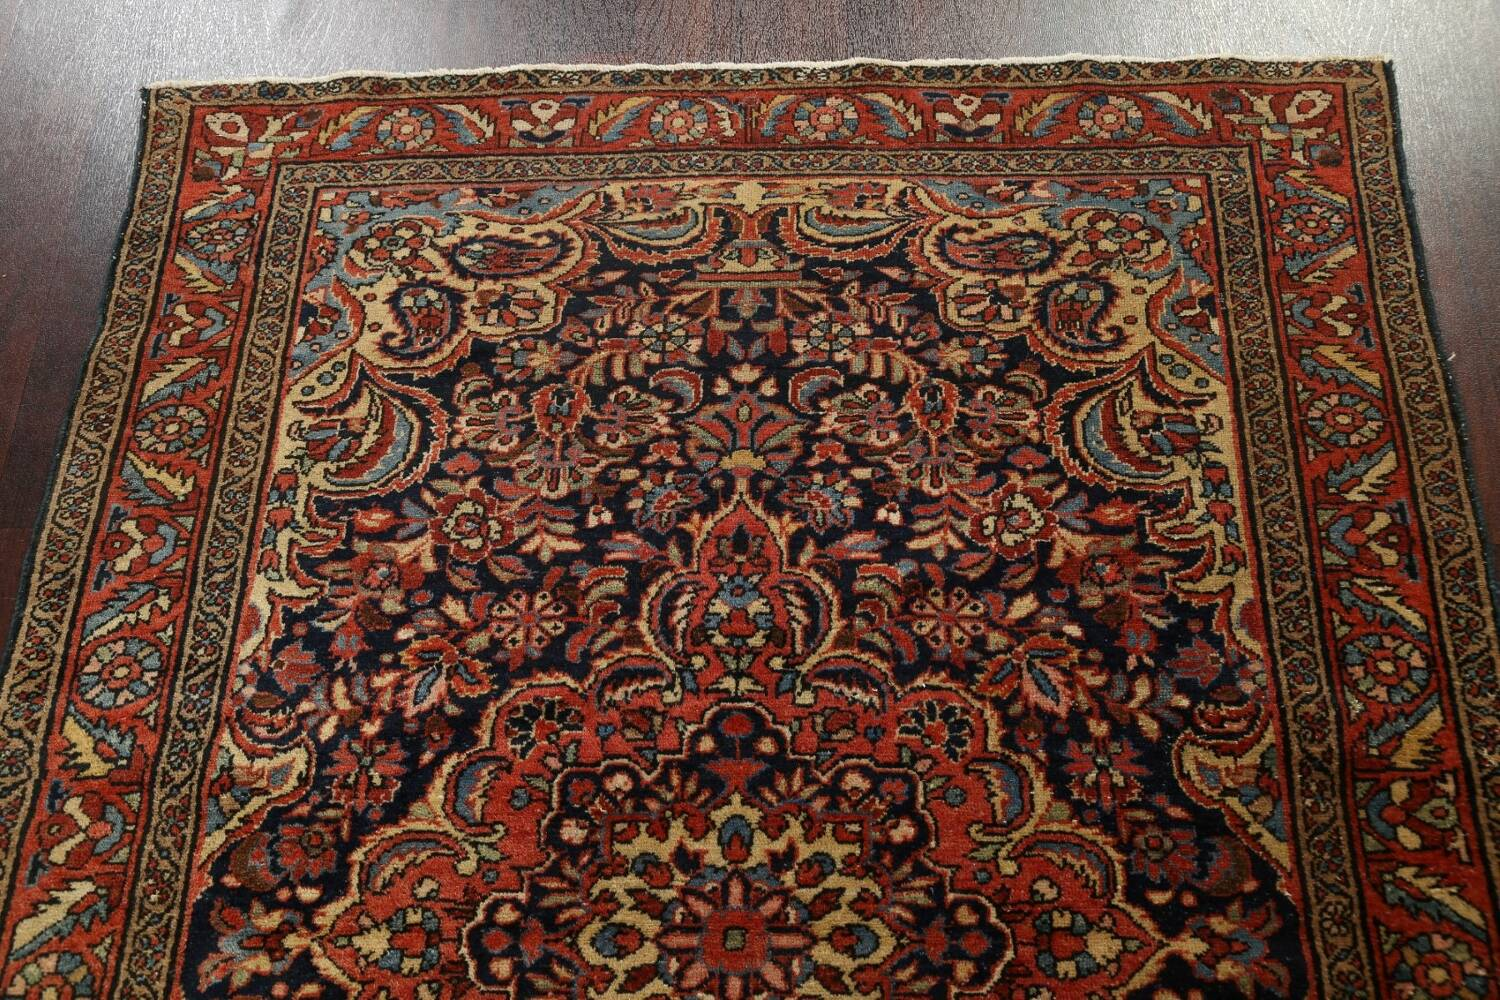 Antique Vegetable Dye Malayer Persian Area Rug 5x6 image 9